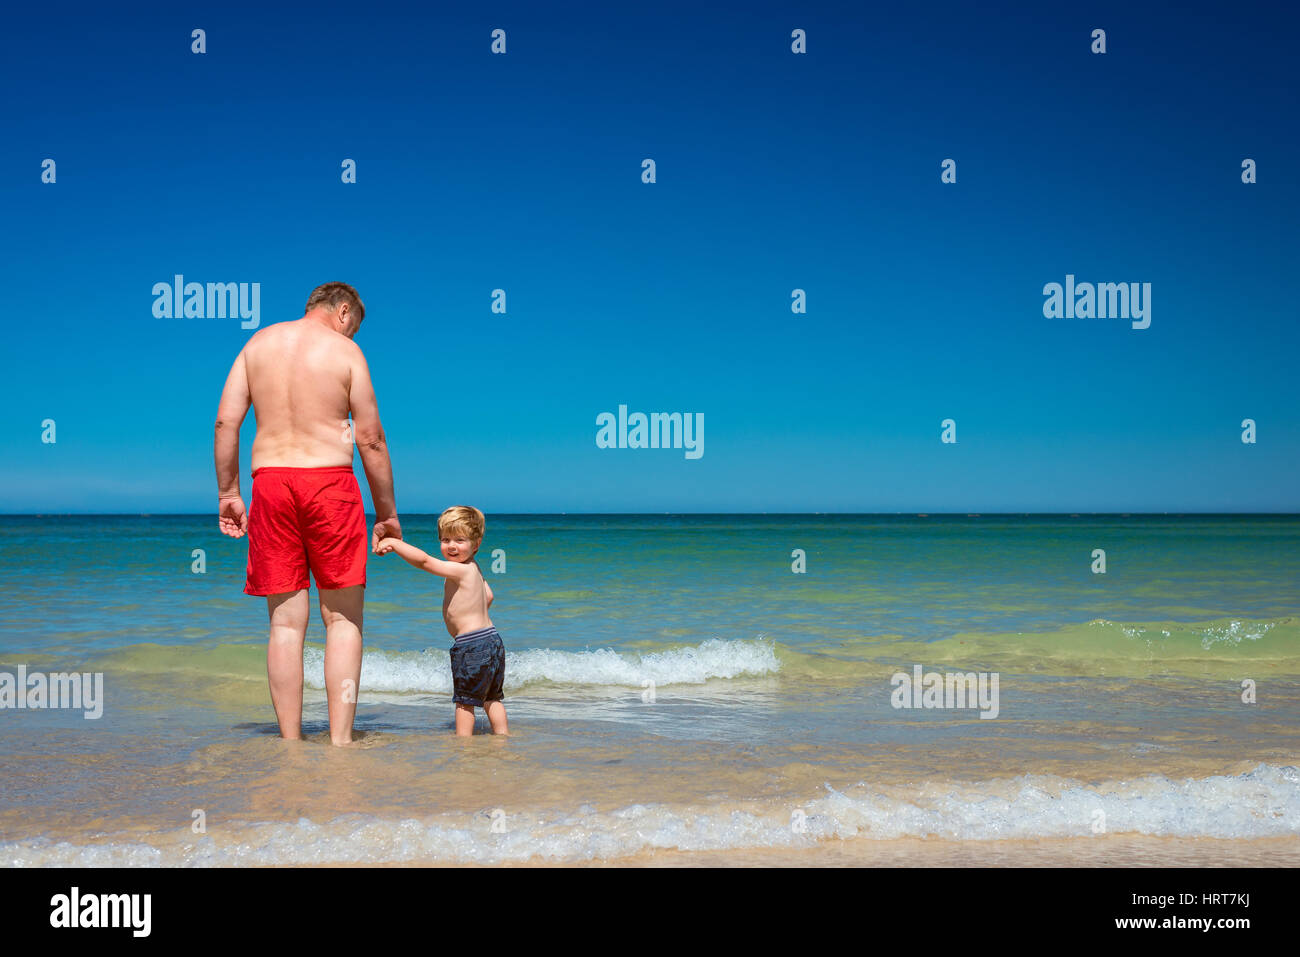 Grandfather with grandson holding hands on beach - Stock Image